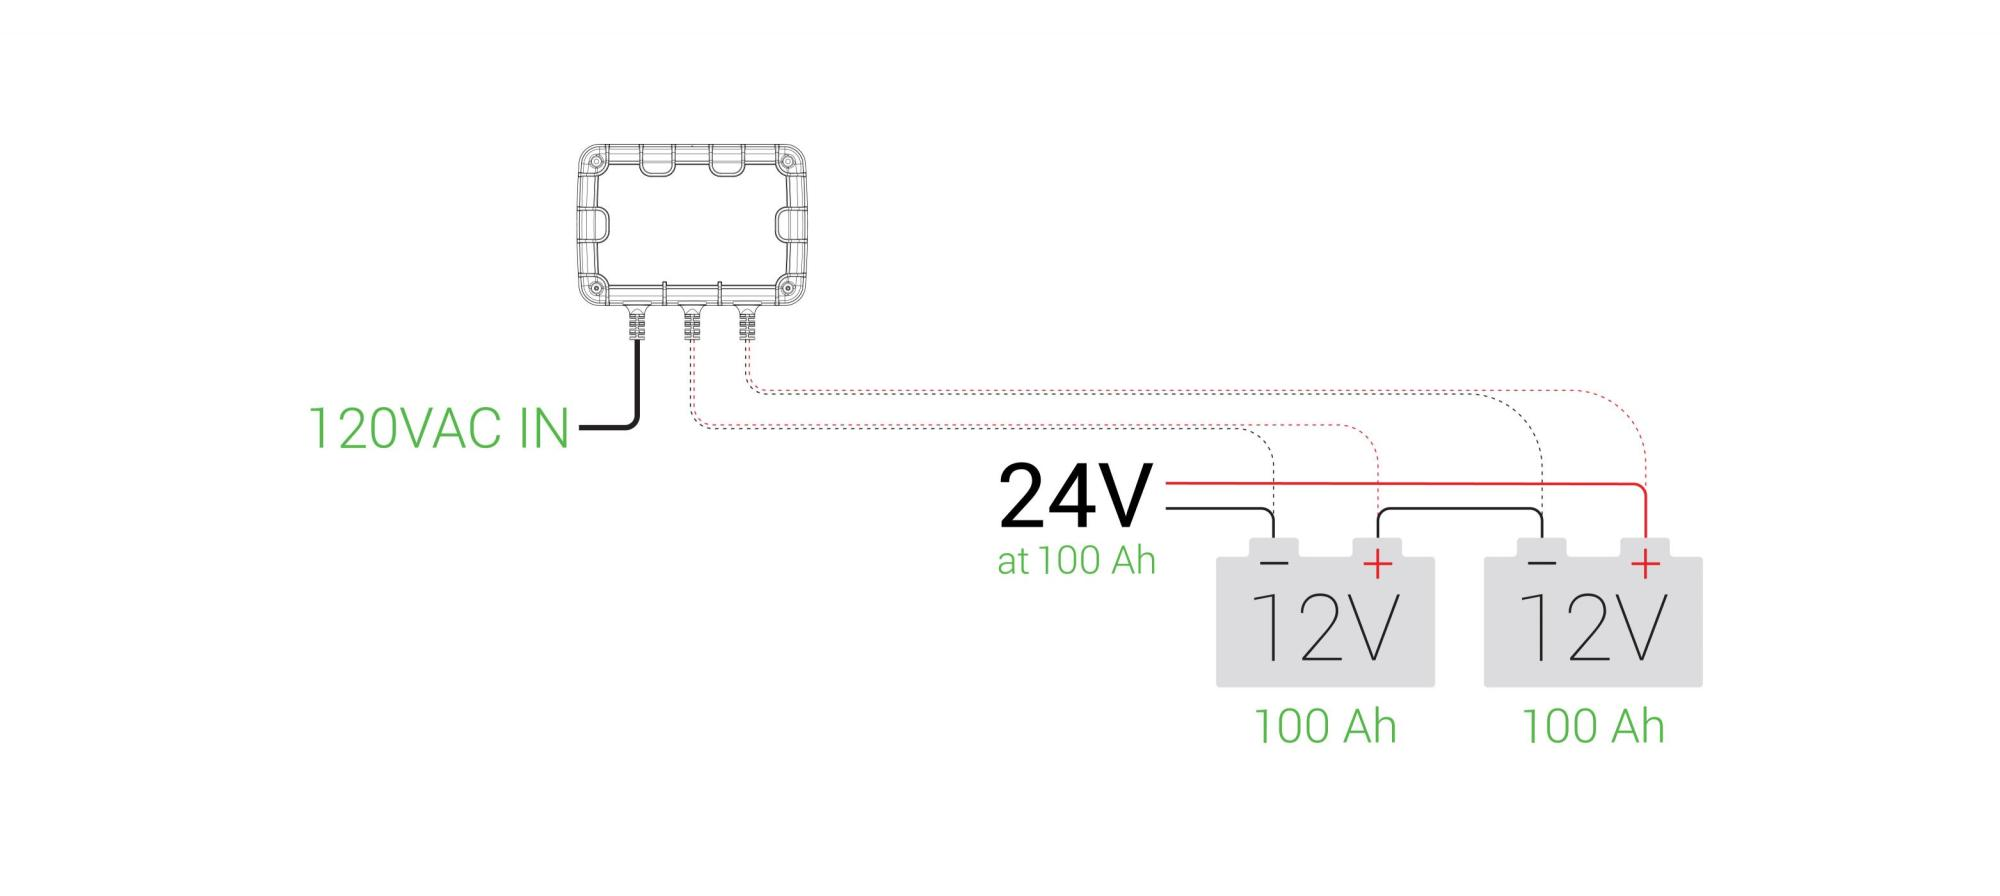 hight resolution of in the second example to charge a 24v system simply use each bank of the charger on each 12v battery terminal leads